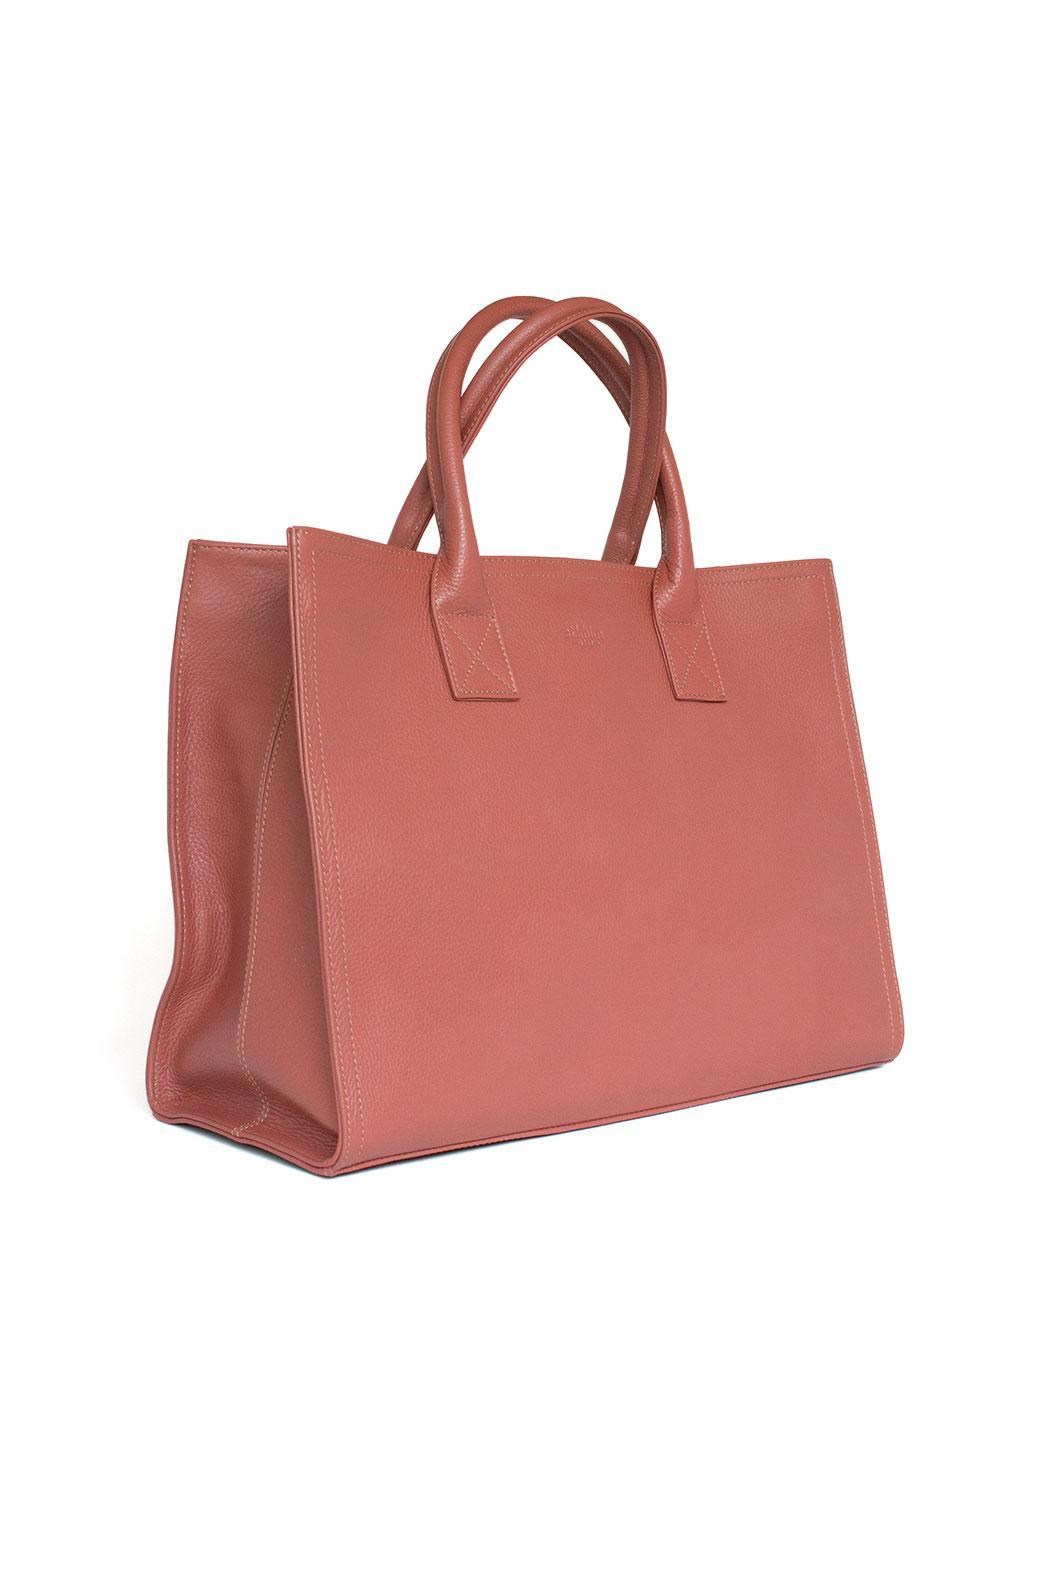 estocolmoapparel Salmon Leather Organizer - Side Cropped Image